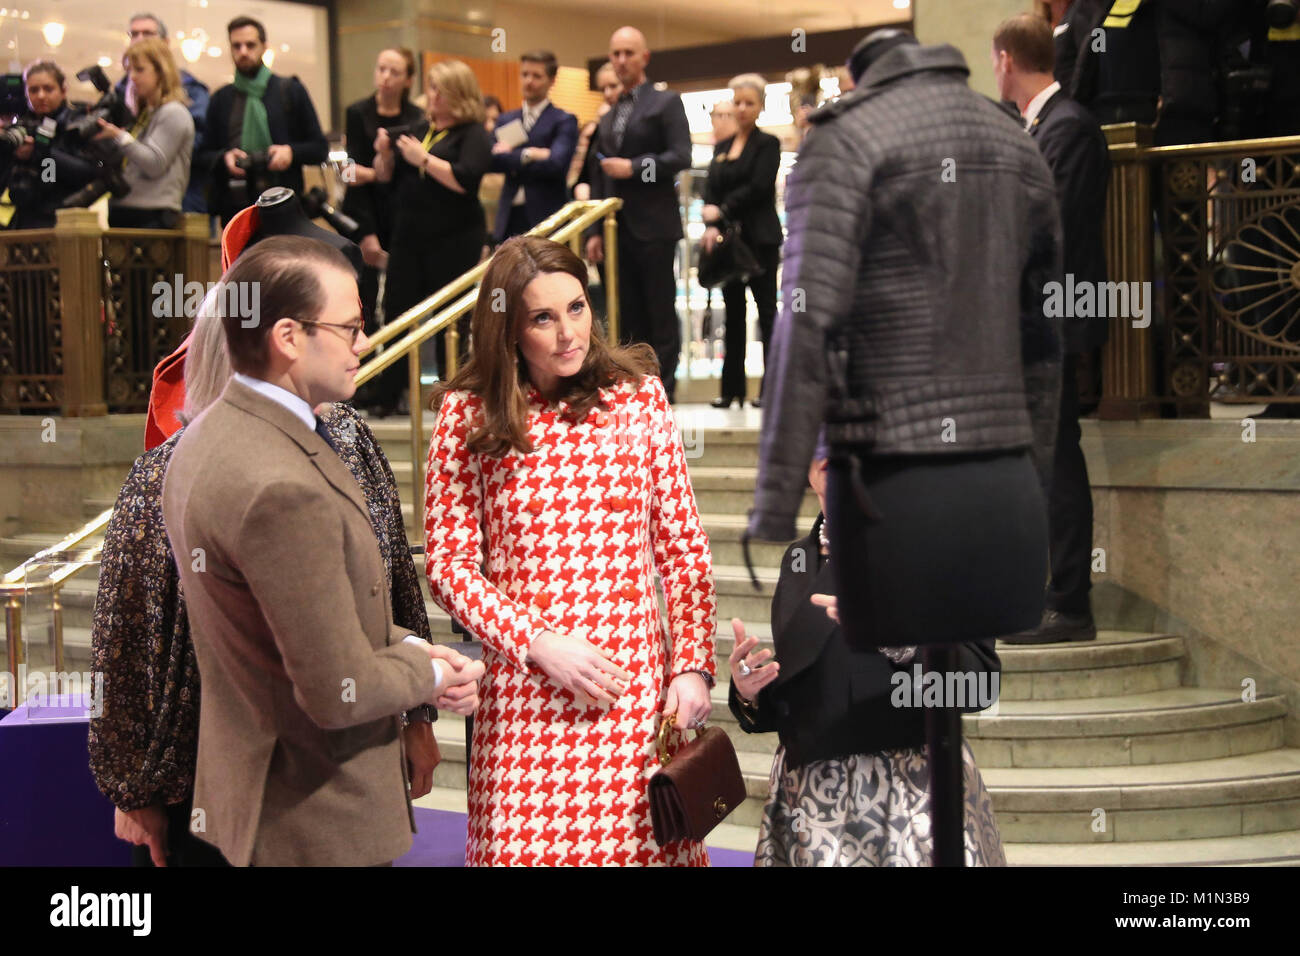 The Duchess of Cambridge, accompanied by Prince Daniel of Sweden, visits  the NK department store in Stockholm to open an interactive exhibition of UK  design ...